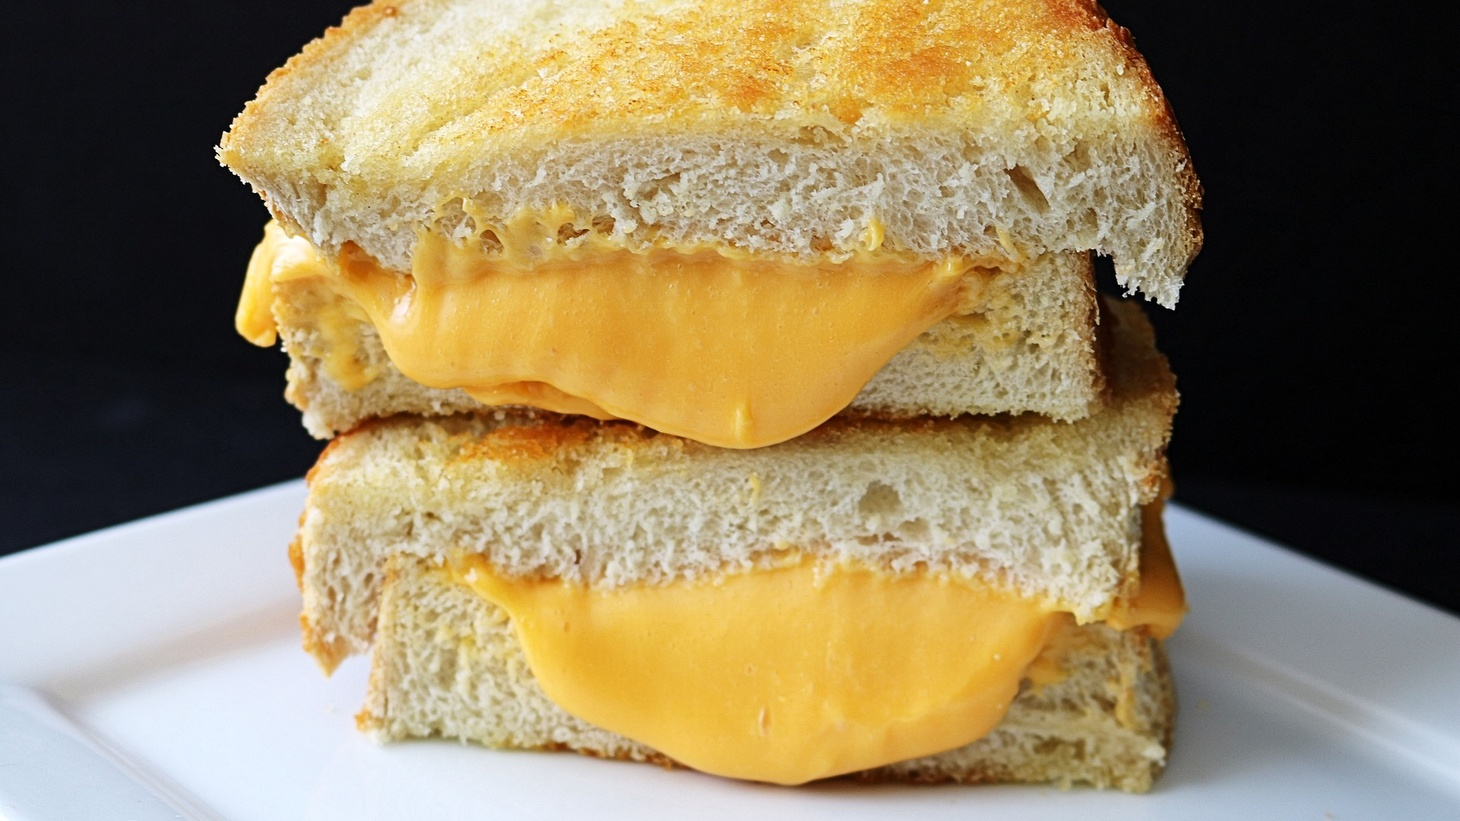 With dueling origin stories, the grilled cheese may have started in Britain with an open-faced, broiled version.